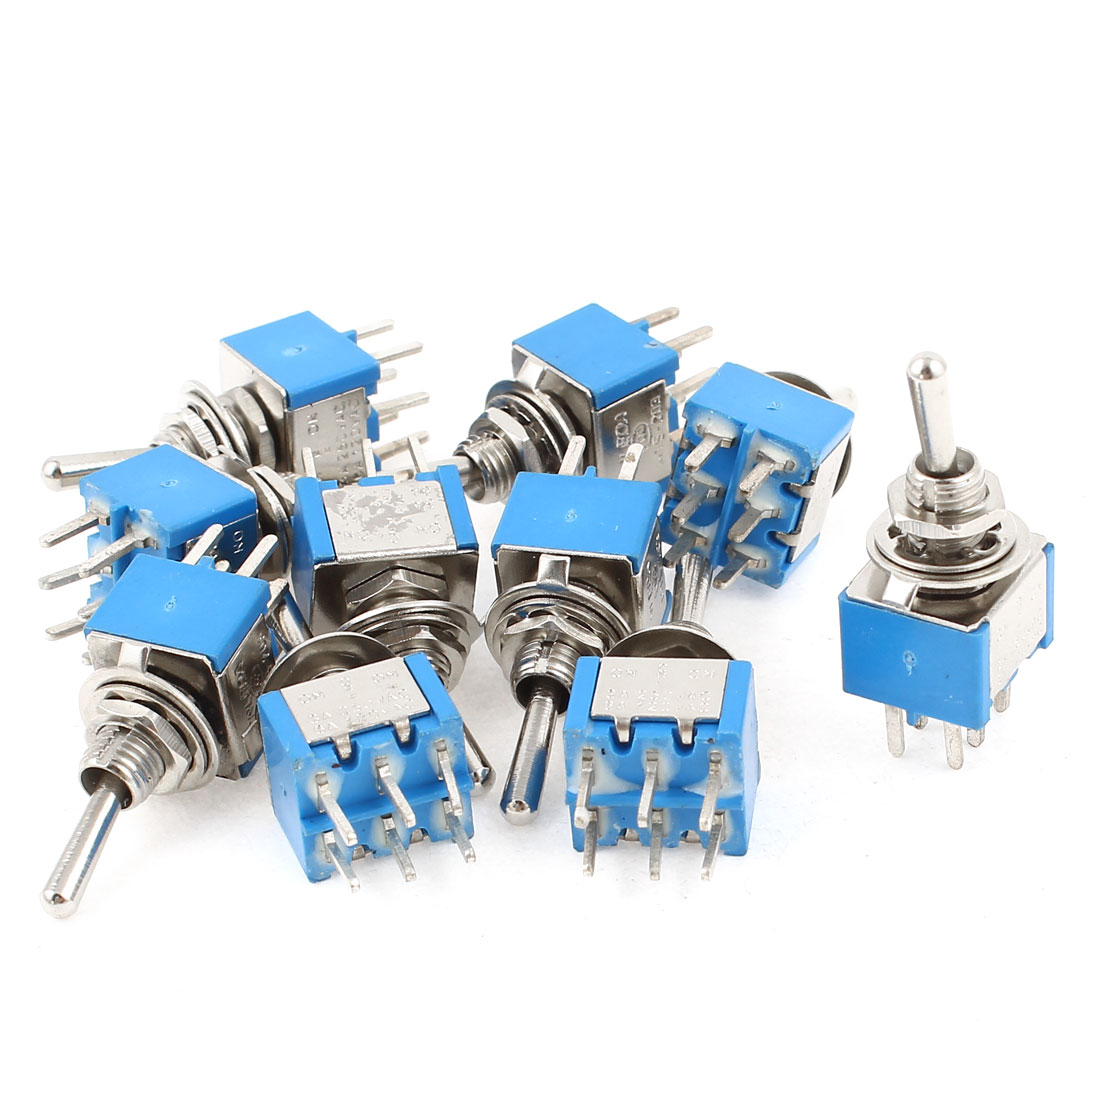 10Pcs DPDT 3 Positions ON/OFF/ON Toggle Switches AC 250V 3A 120V 6A